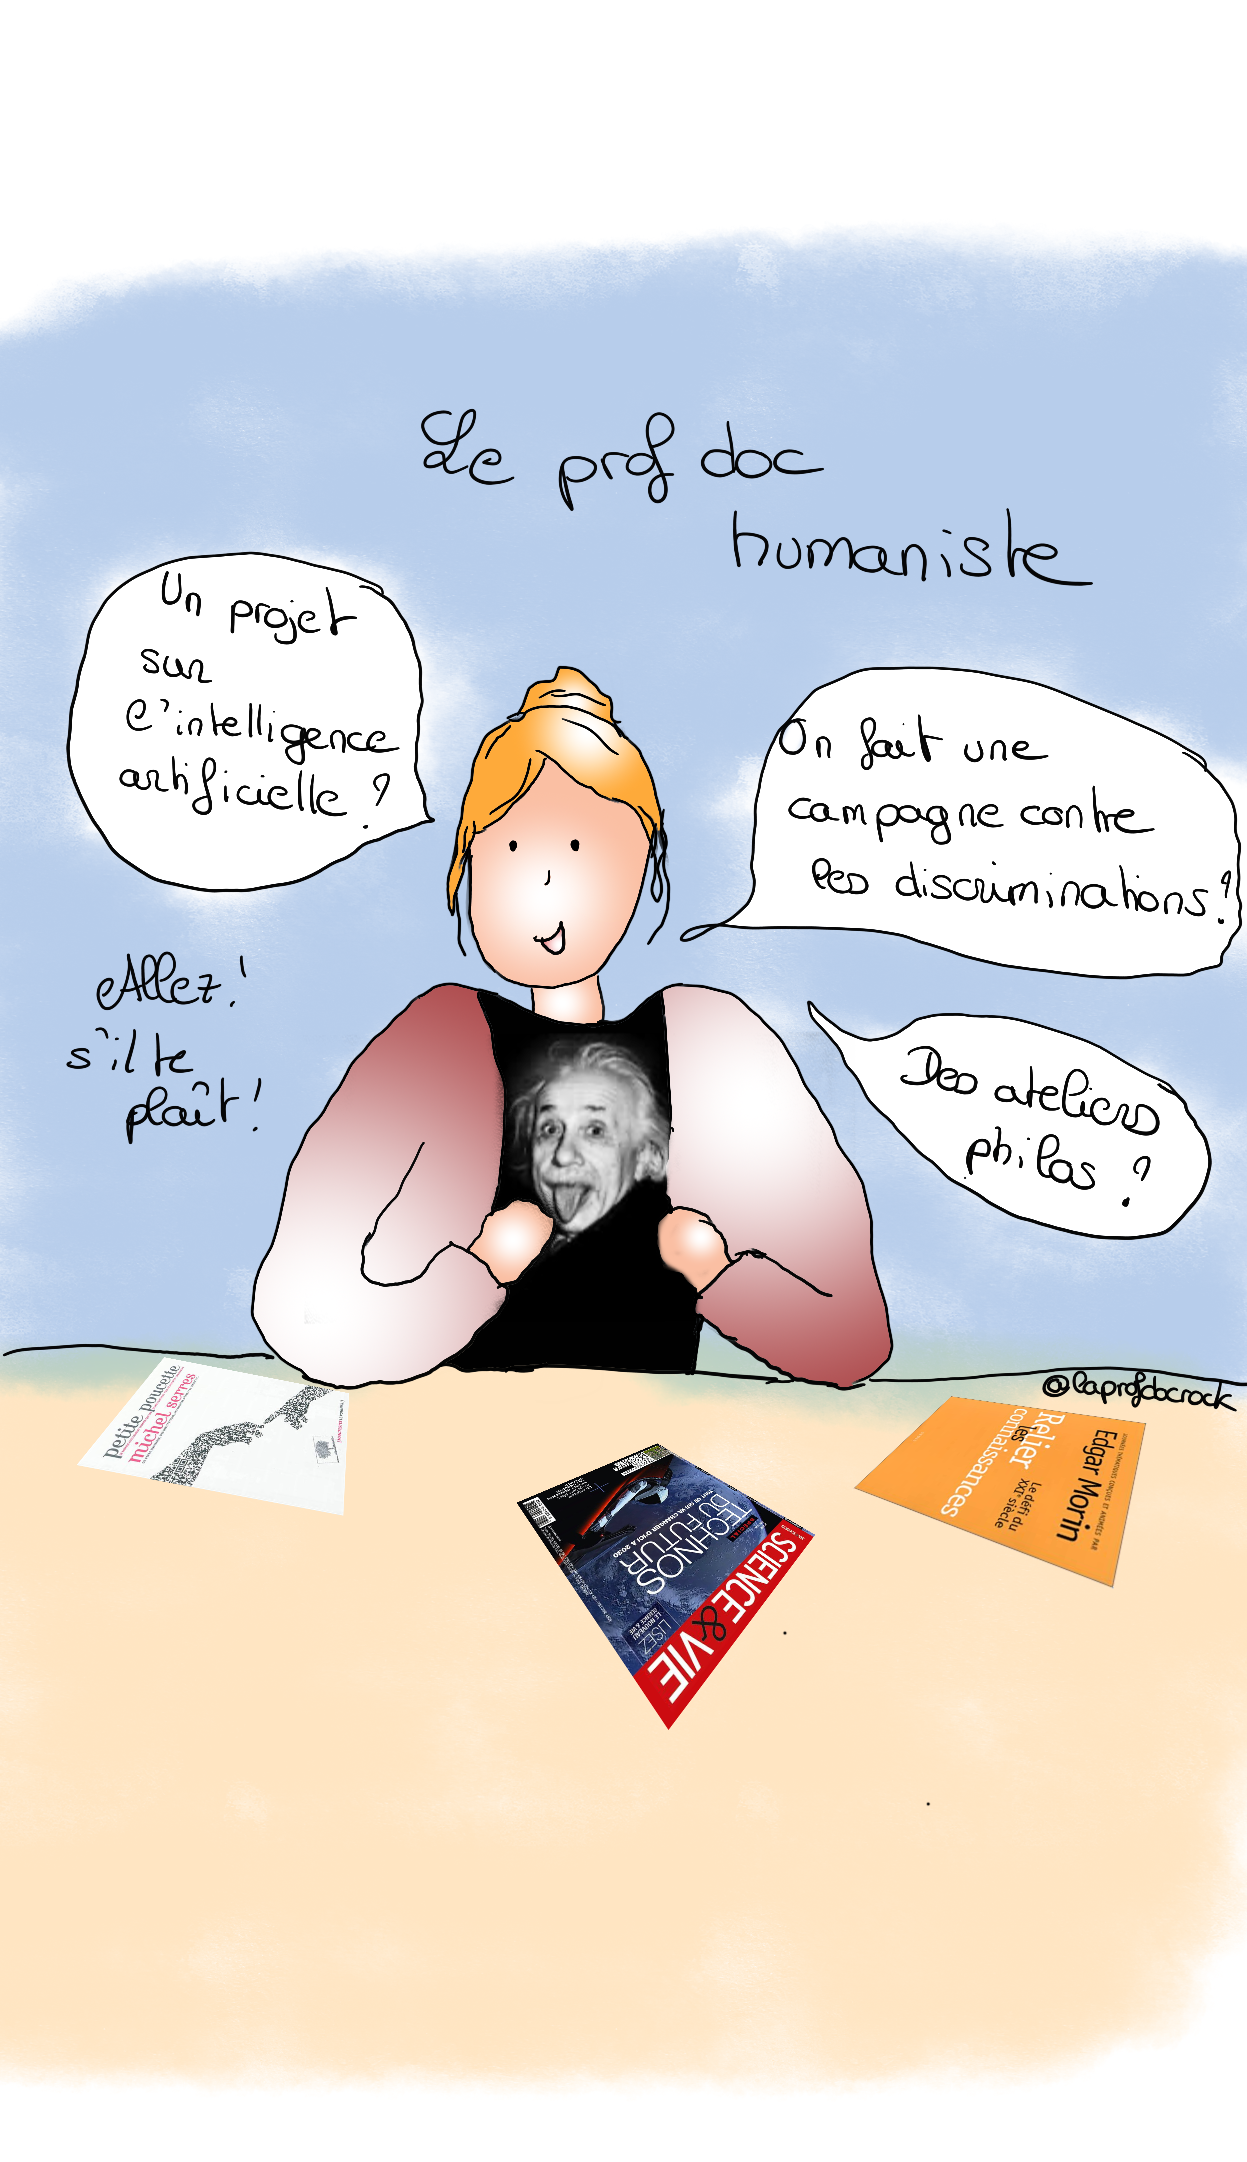 Le Prof doc humaniste